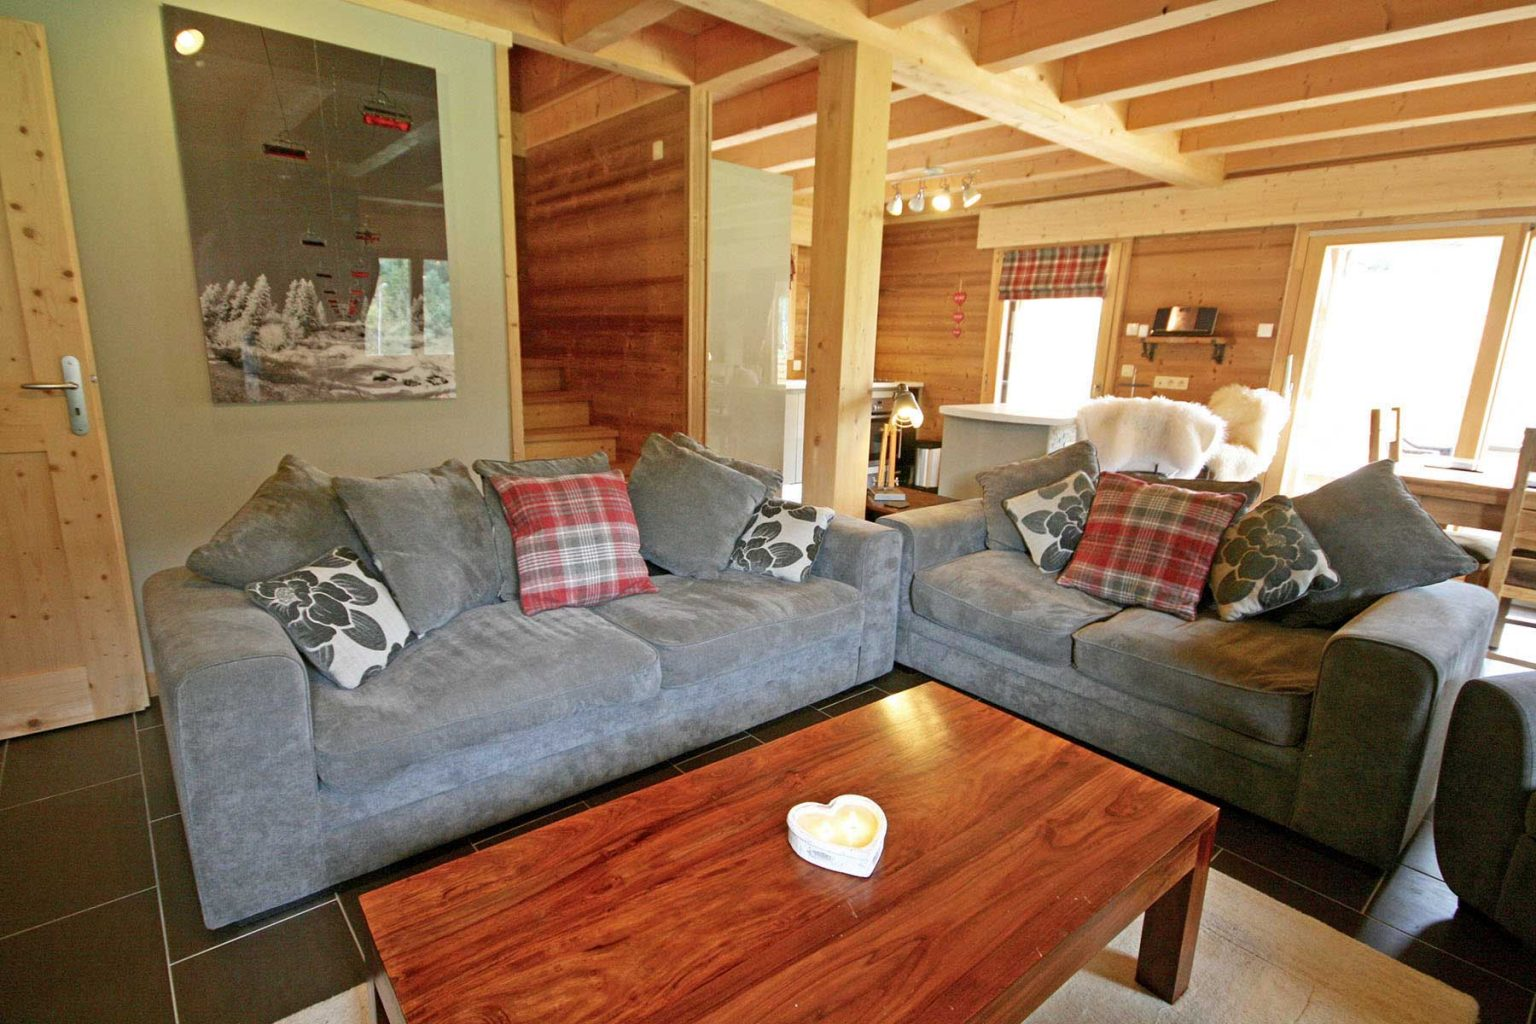 Perrieres chalet 758 Lounge